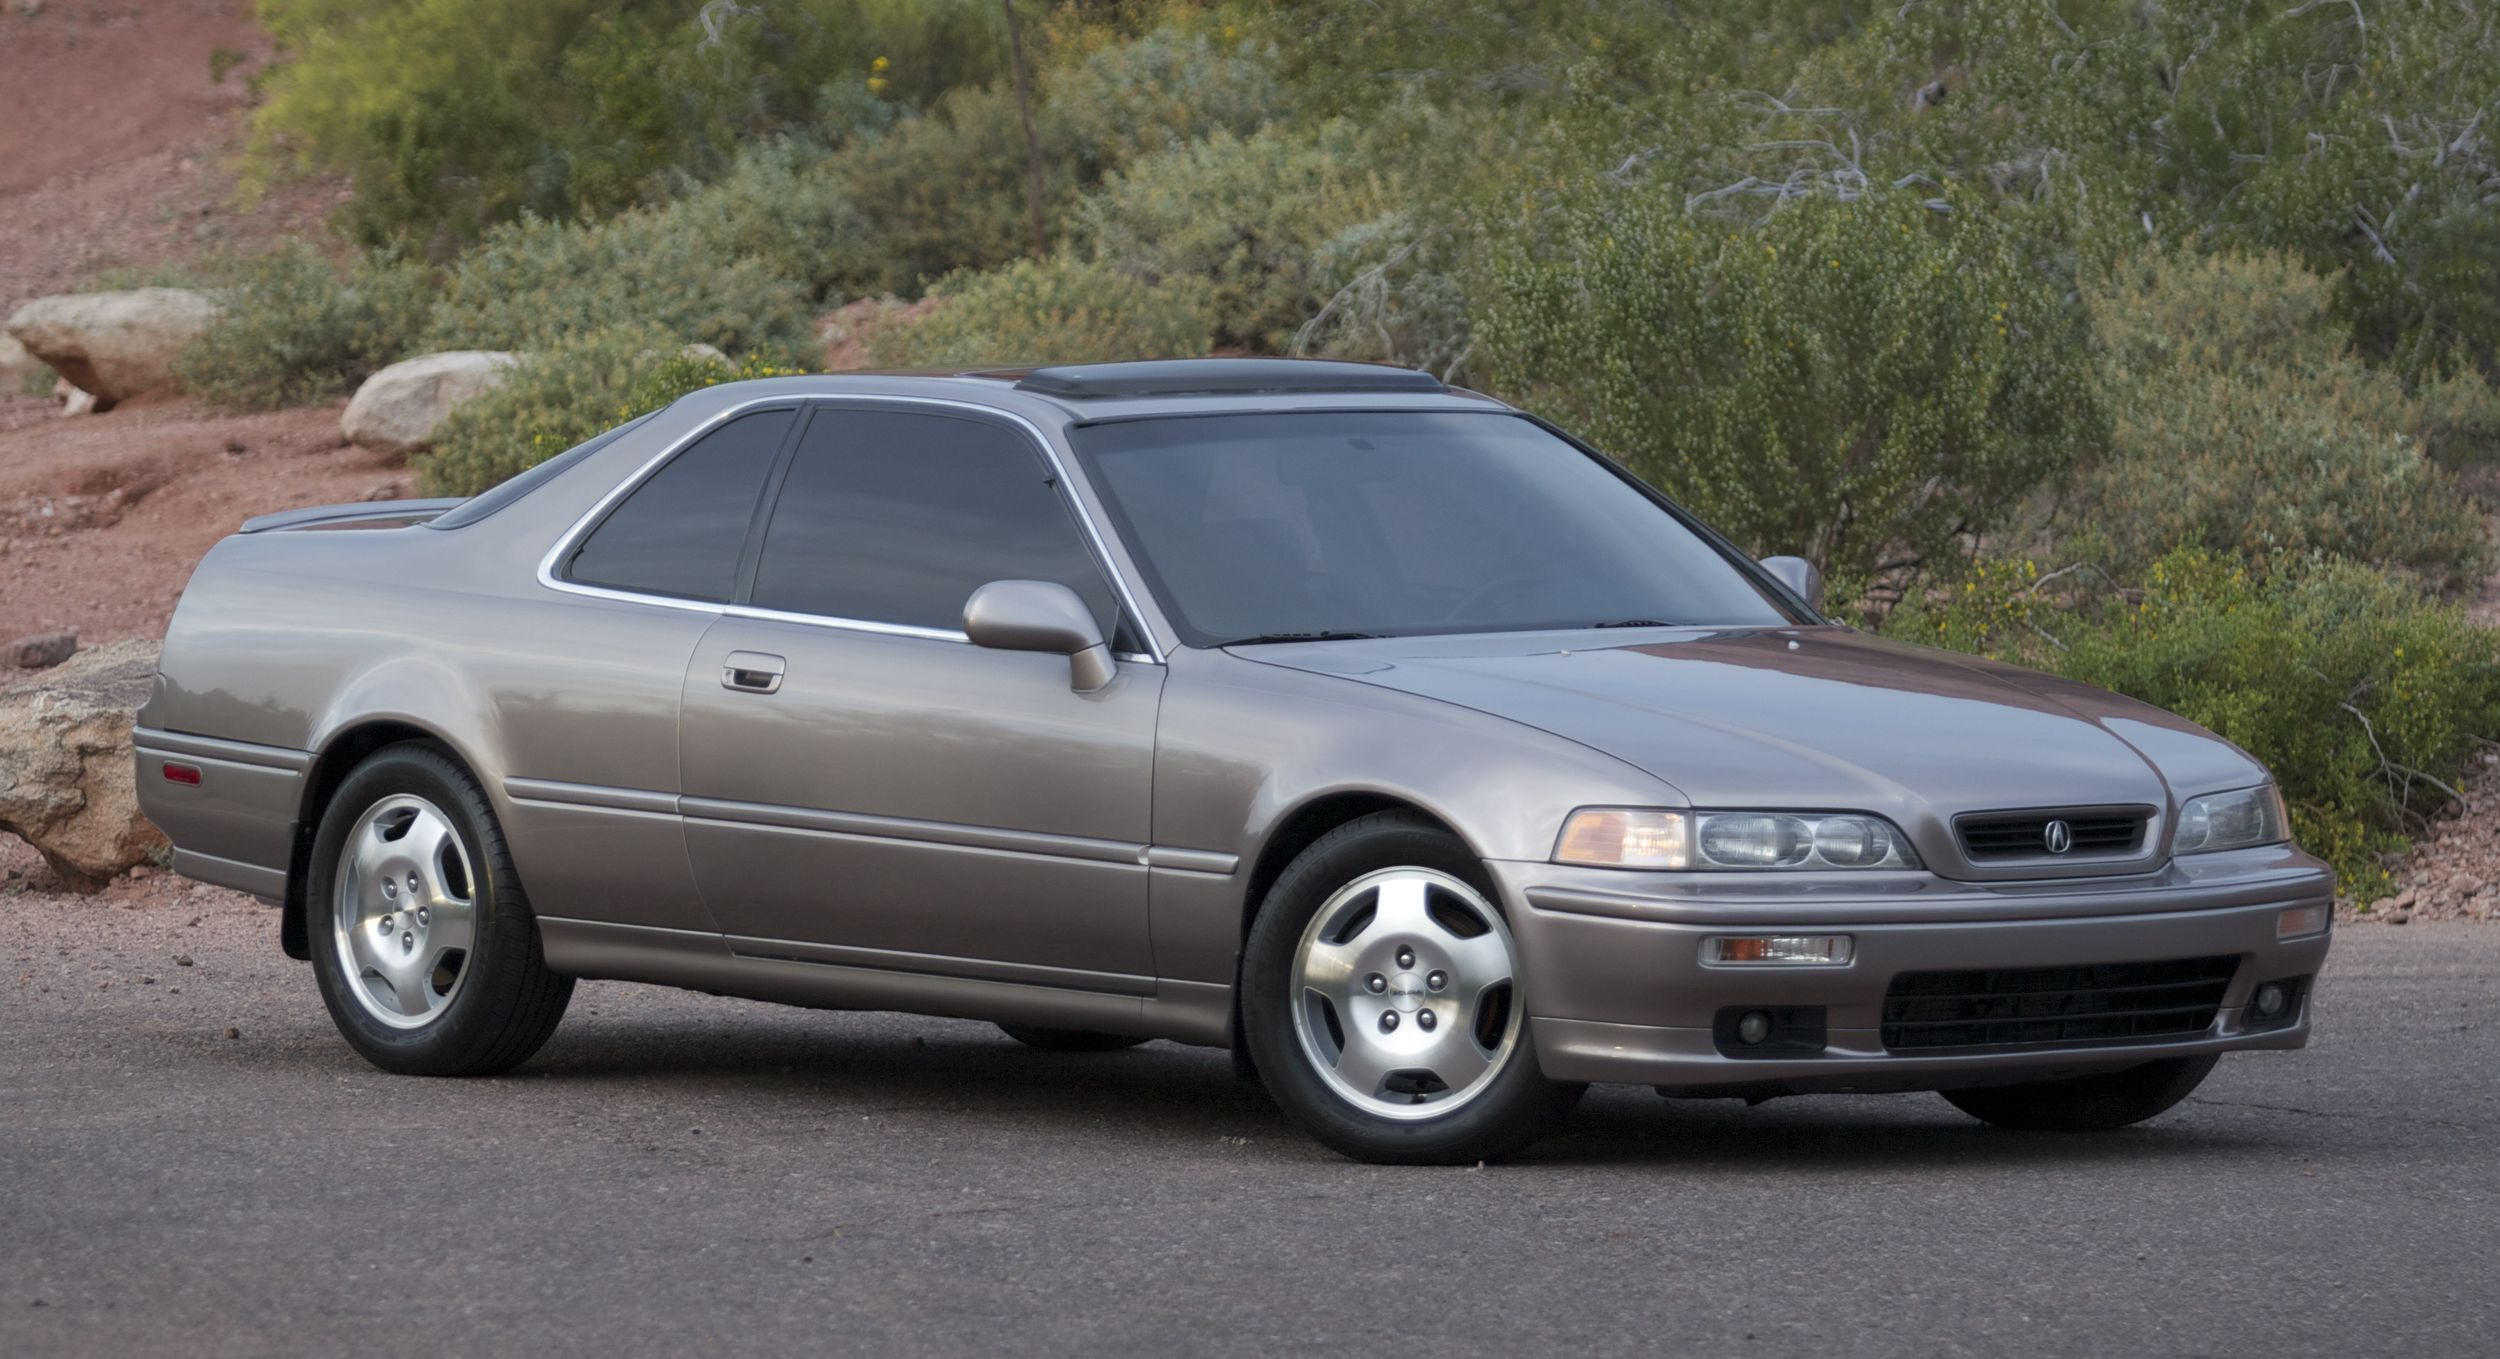 Acura Legend #5